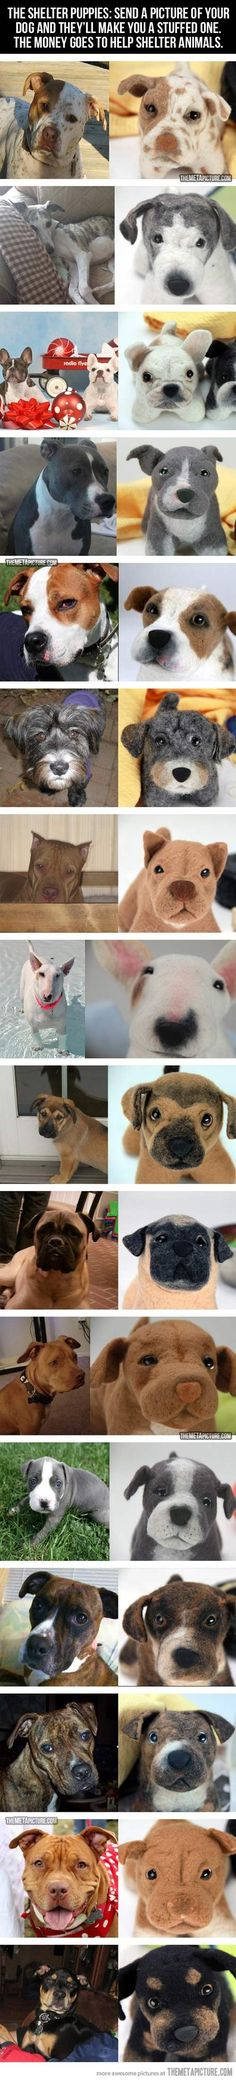 The Shelter Puppies: Send a picture of your dog and they'll make you a stuffed one. The money goes to help shelter animals! shelter anim, gift, dog picture ideas, animal shelters, shelter dogs stuffed, shelter pups, help shelter, stuf dog, shelter puppies